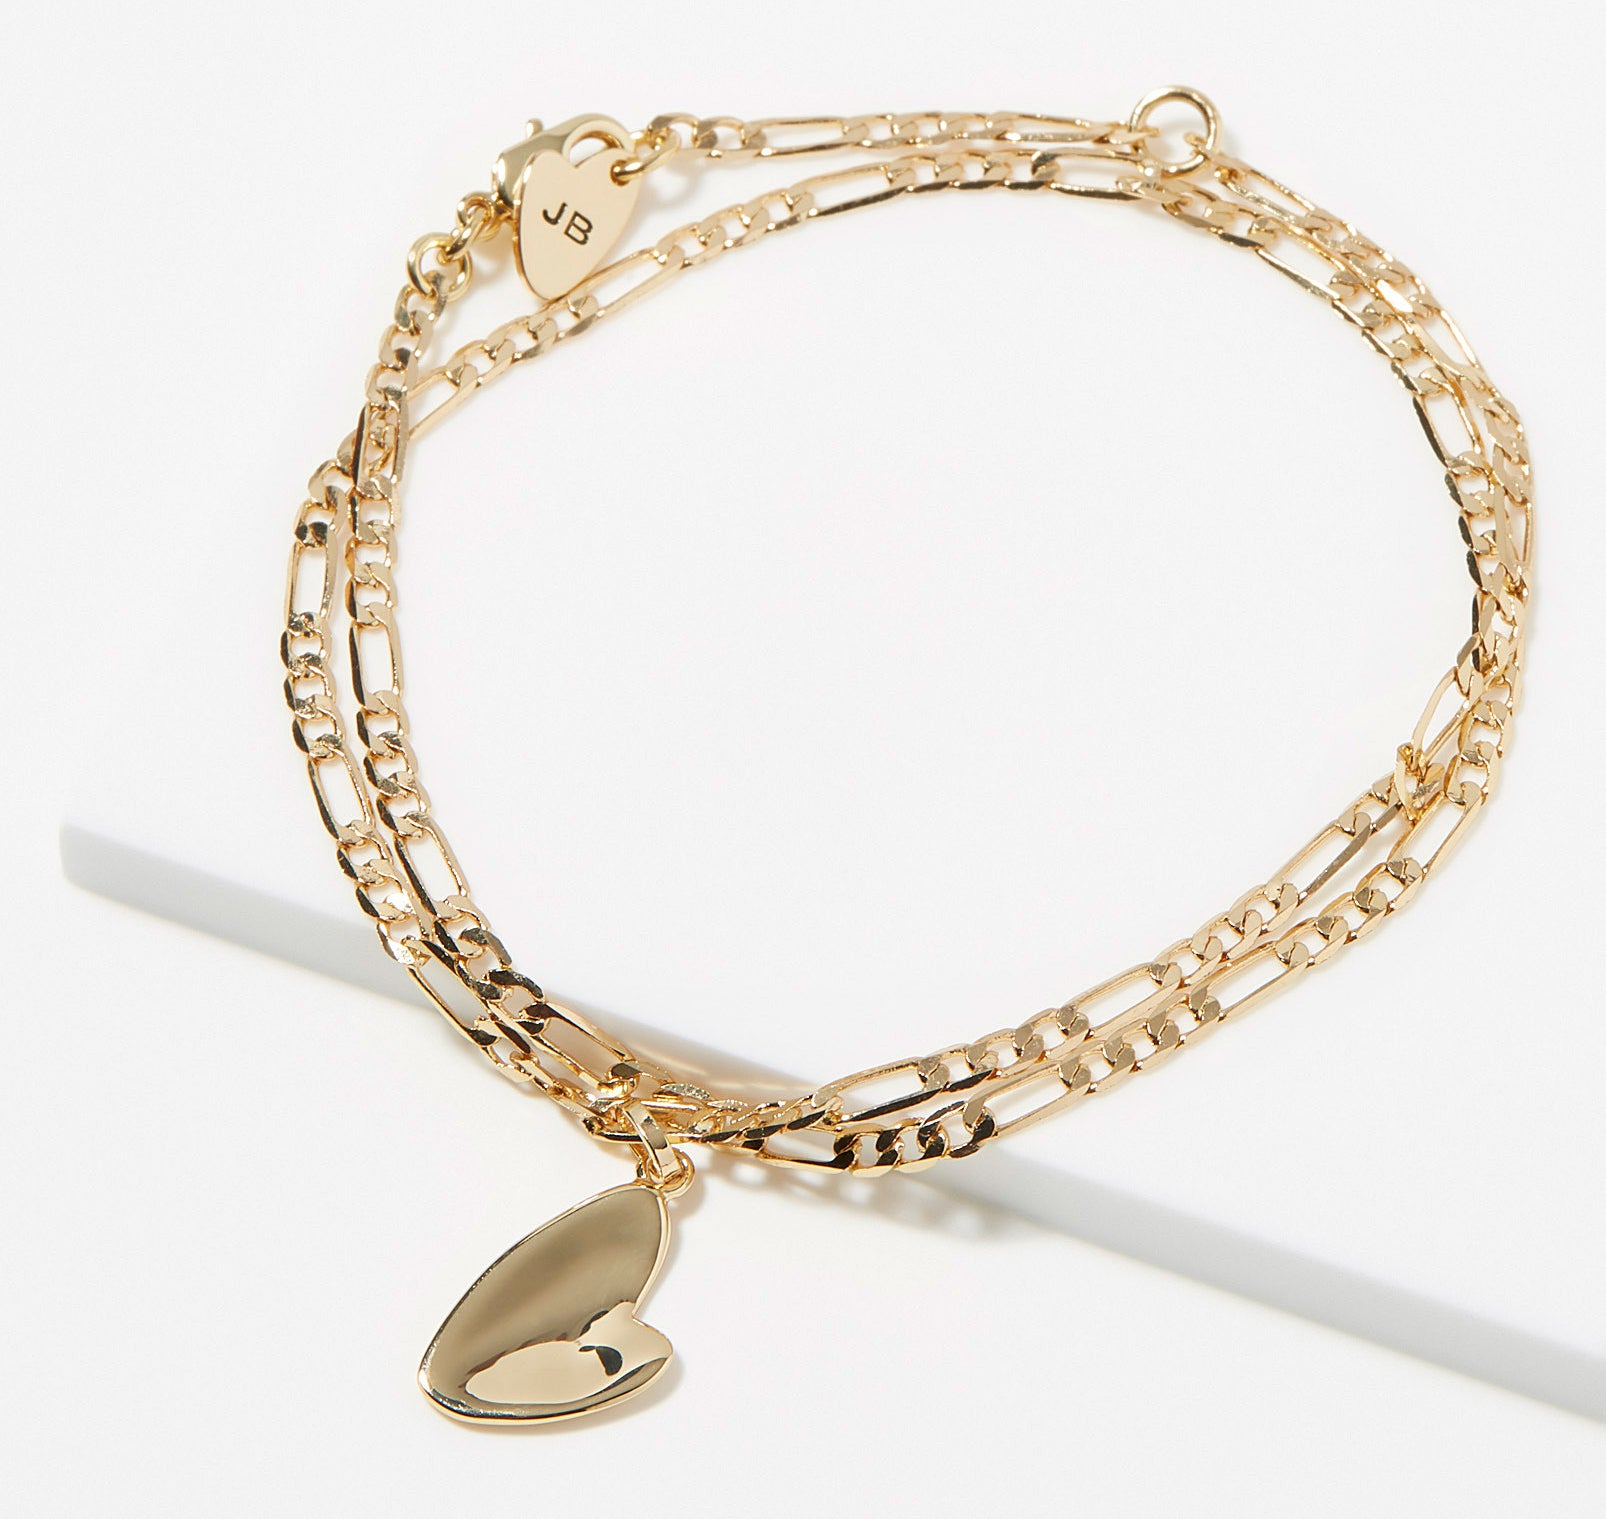 A gold chain bracelet with a heart pendant